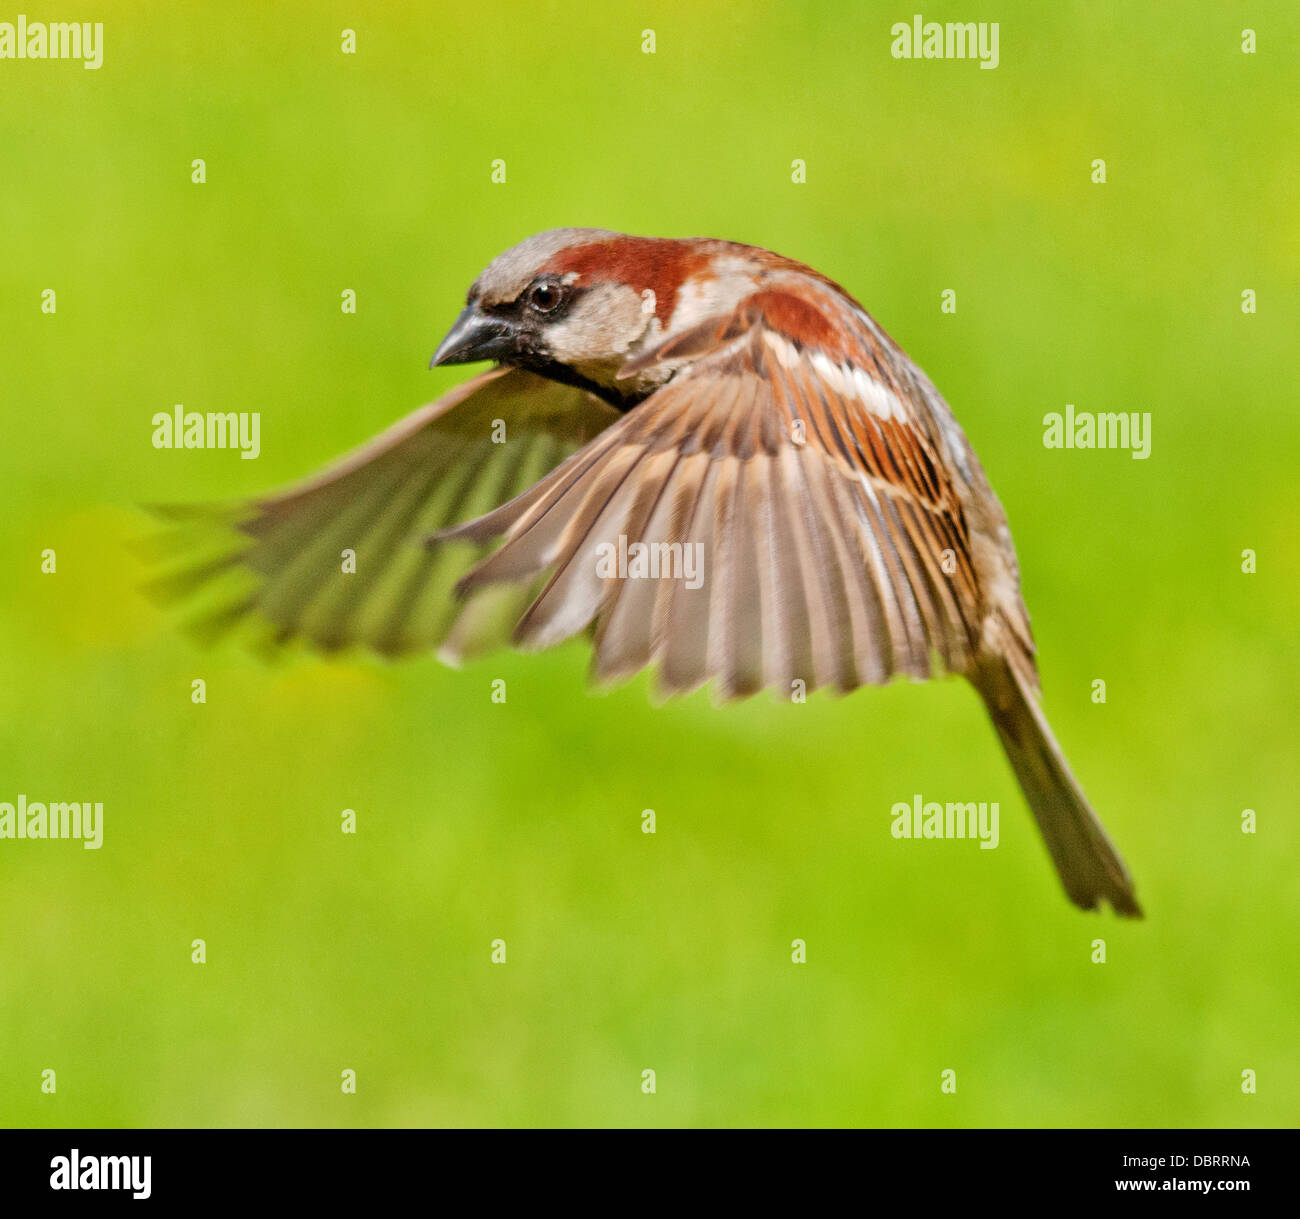 House Sparrow in flight - Stock Image